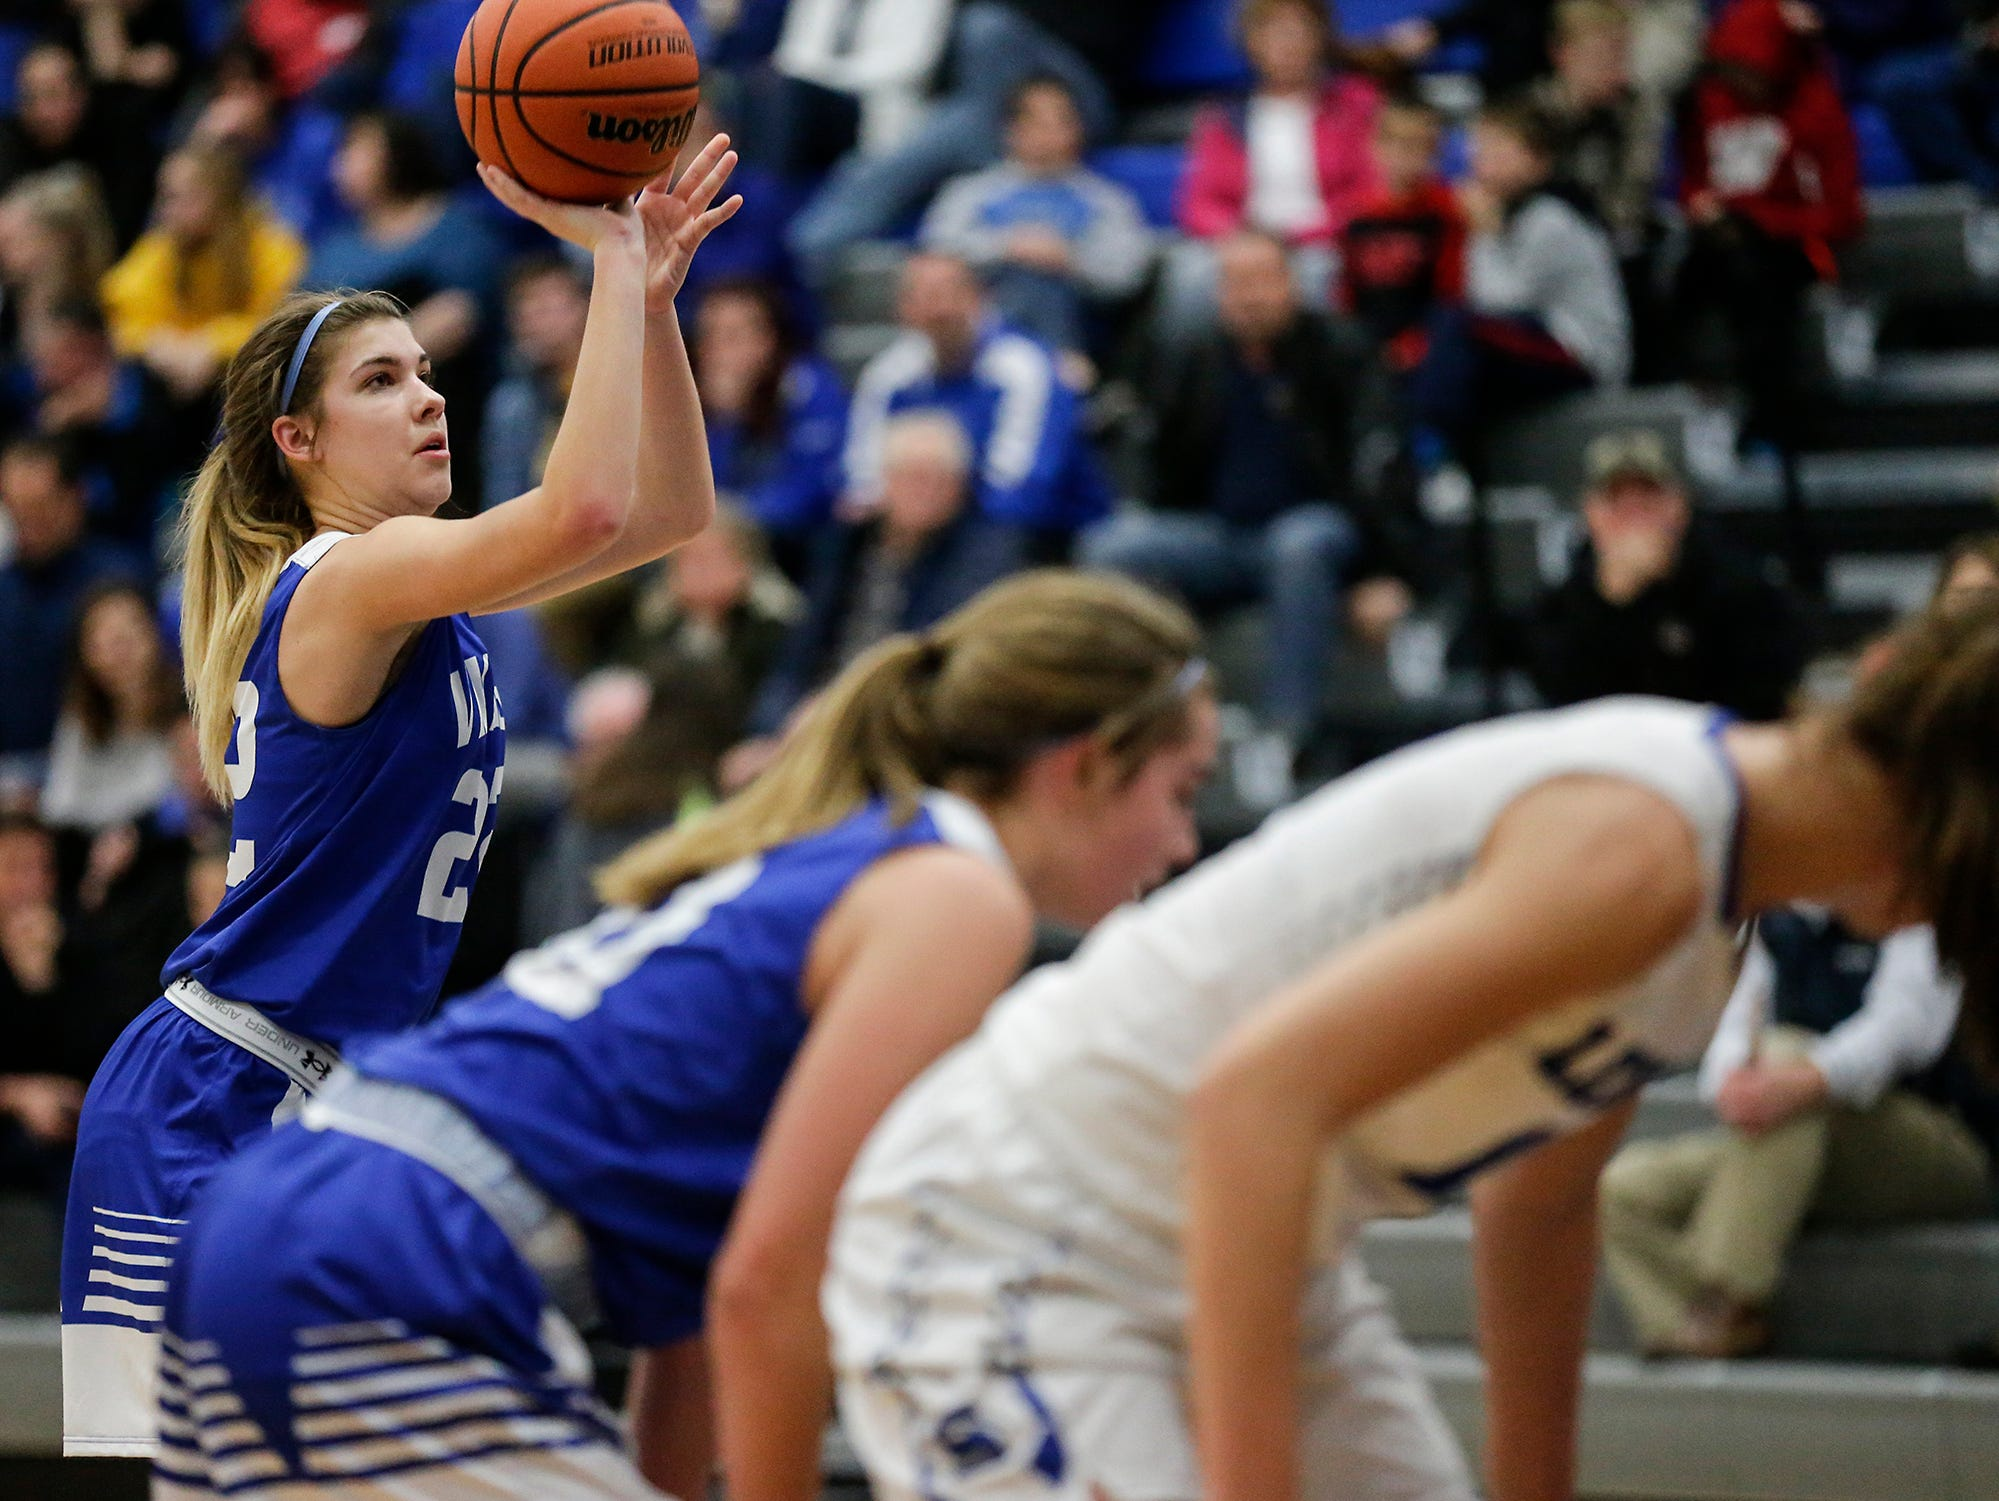 Winnebago Lutheran Academy girls basketball's Kaylee Frey shoots from trhe free throw line against St. Mary's Springs Academy during their game Tuesday, December 18, 2018 in Fond du Lac. Winnebago Lutheran Academy won the game 58-54. Doug Raflik/USA TODAY NETWORK-Wisconsin